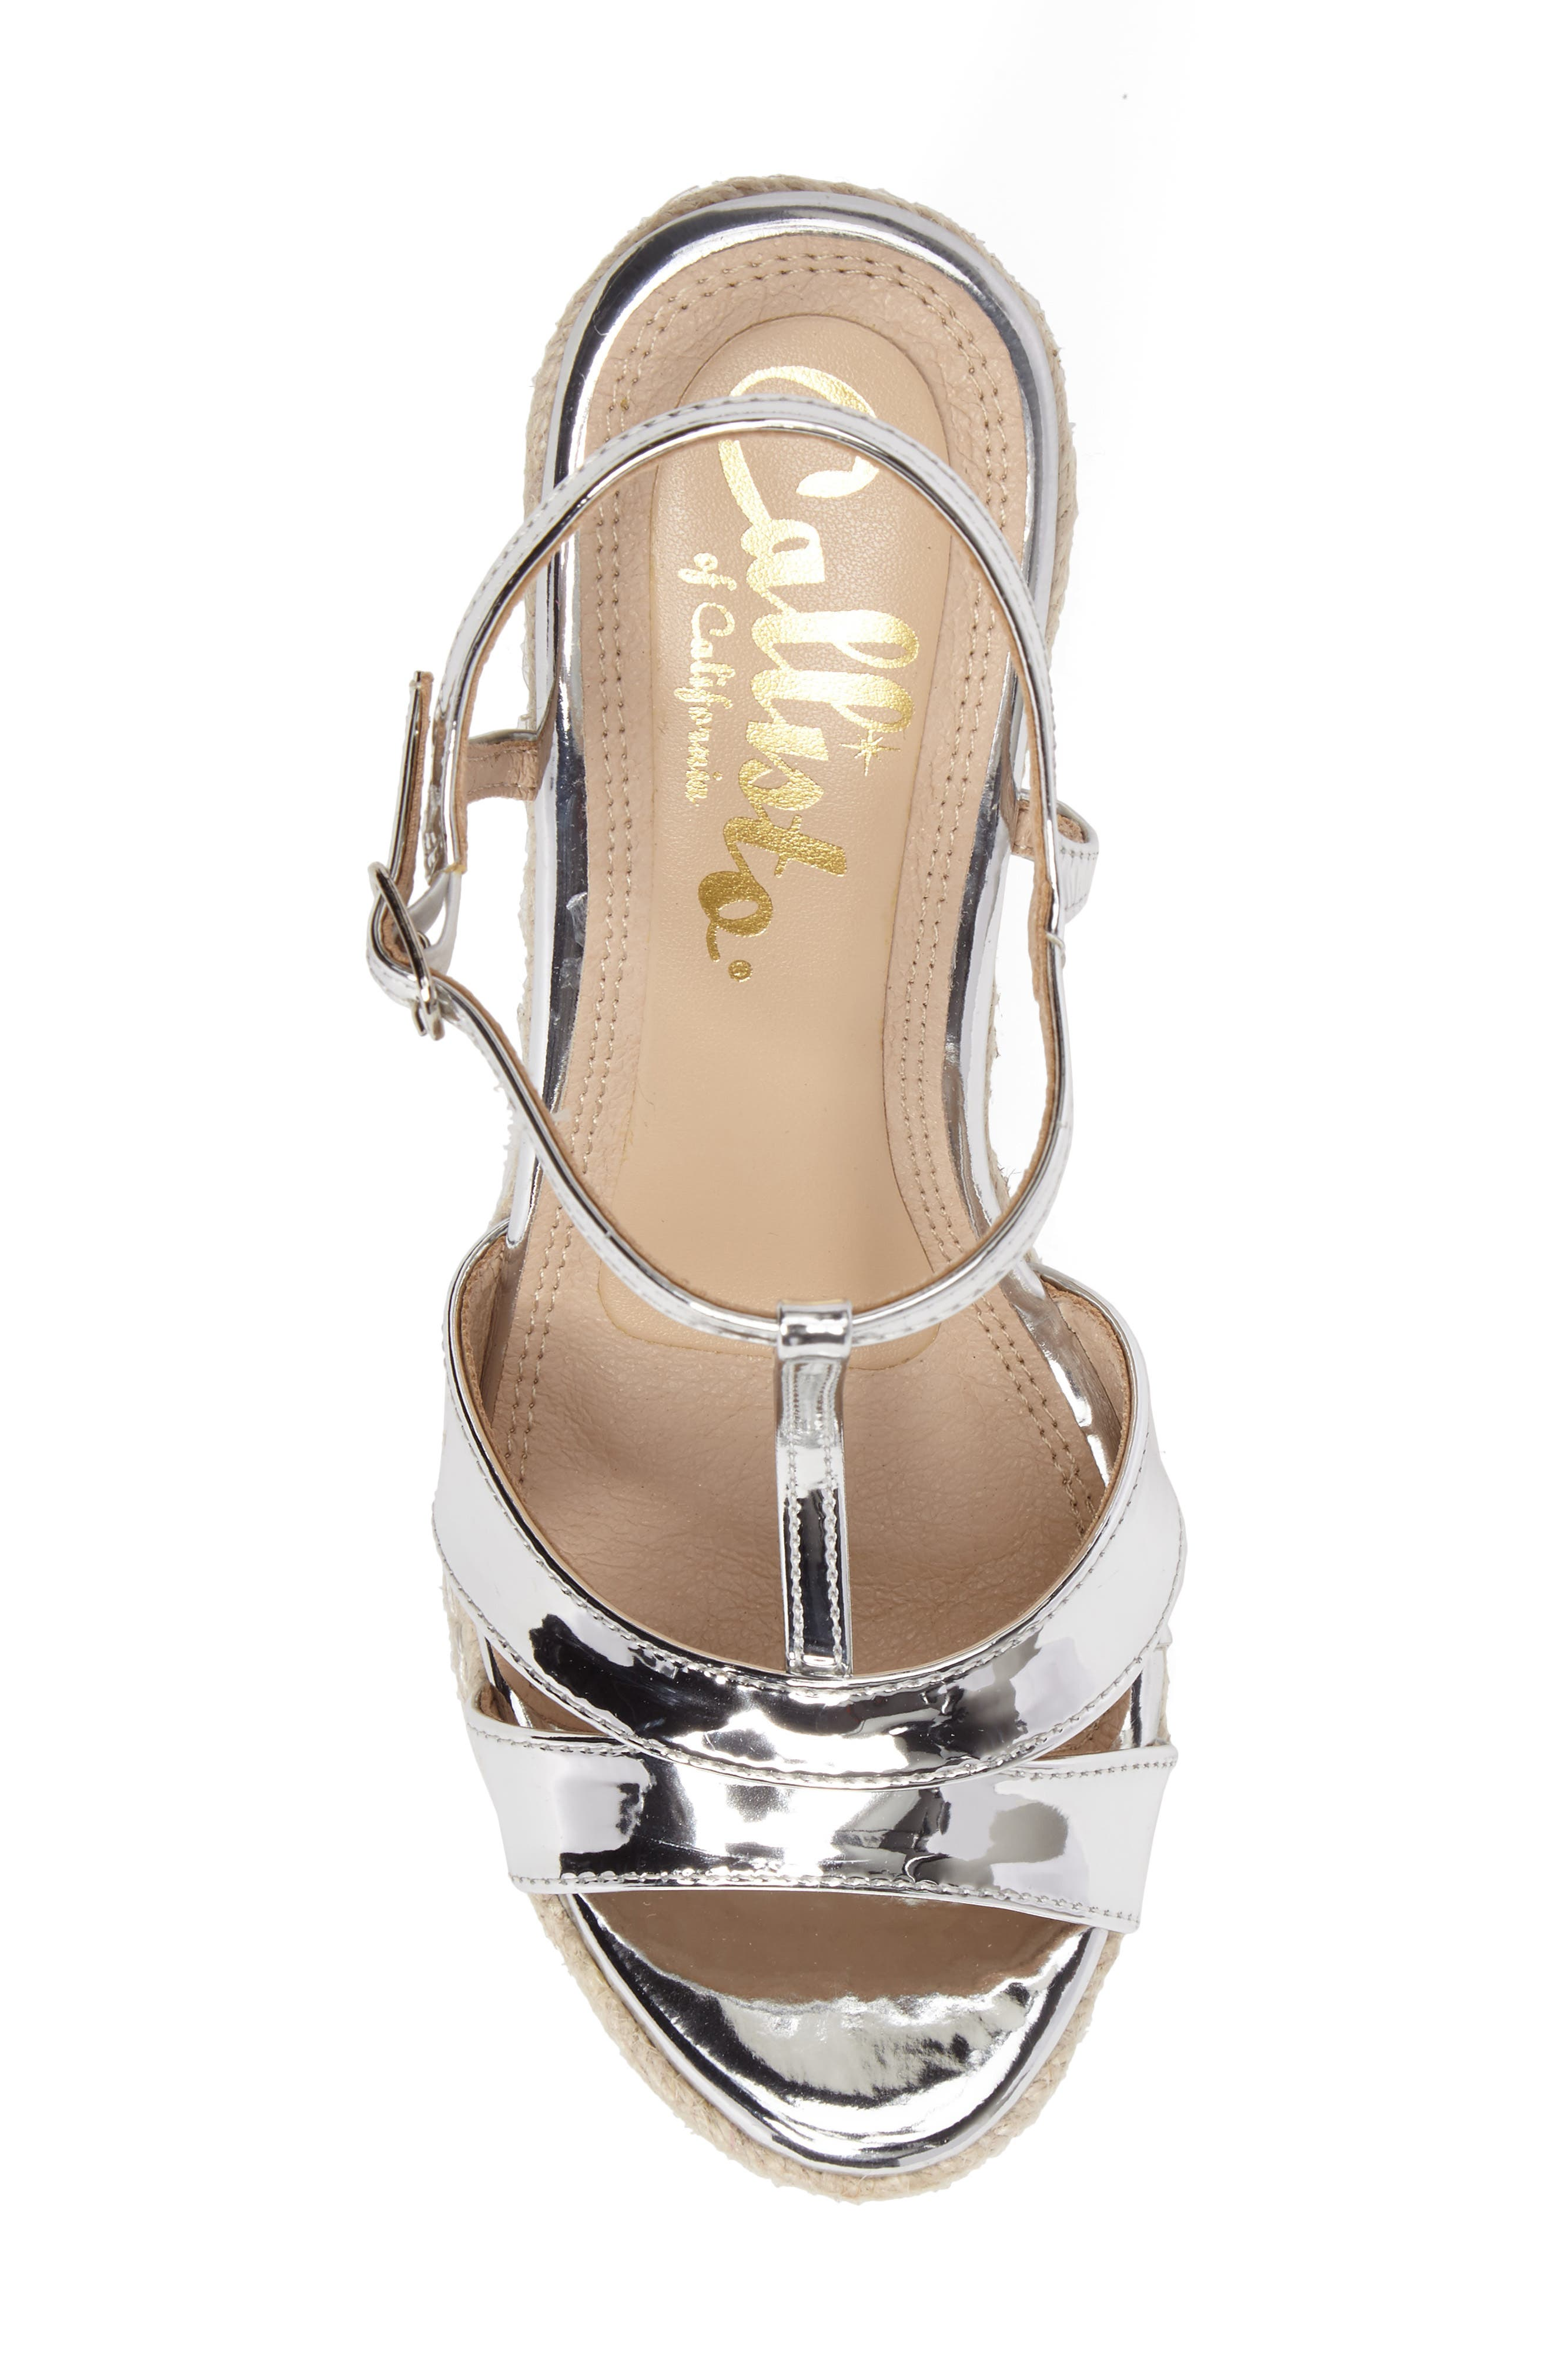 Alinna T-Strap Wedge Sandal,                             Alternate thumbnail 5, color,                             Silver Faux Leather